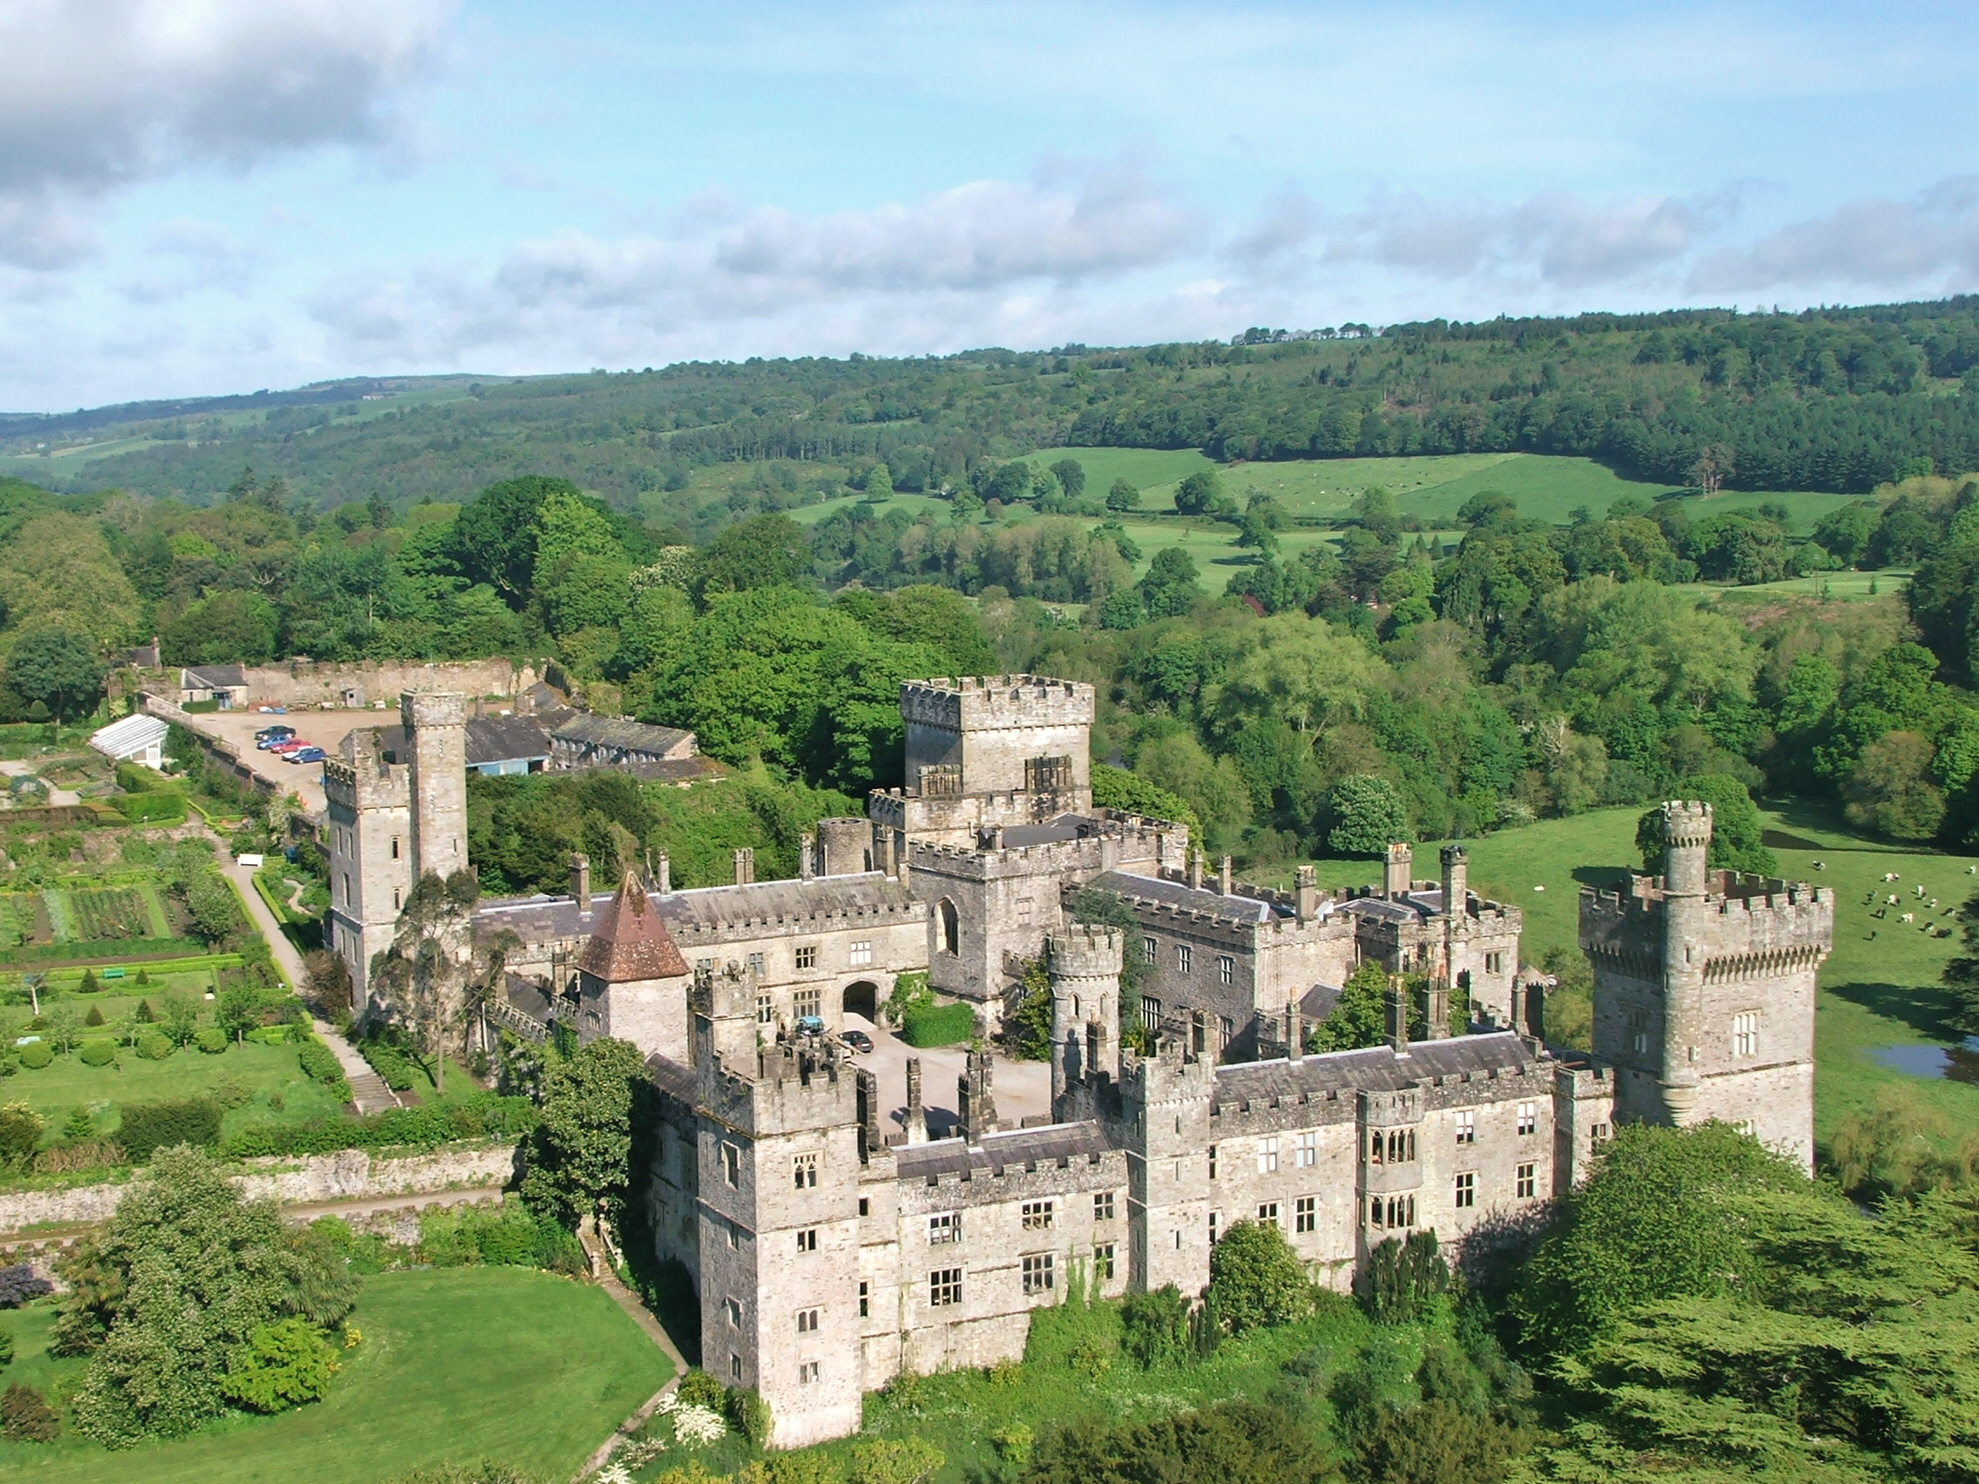 Lismore Castle: 'Built by King John, plumbed by Adele Astaire' - Presented by William Cavendish, Earl of Burlington